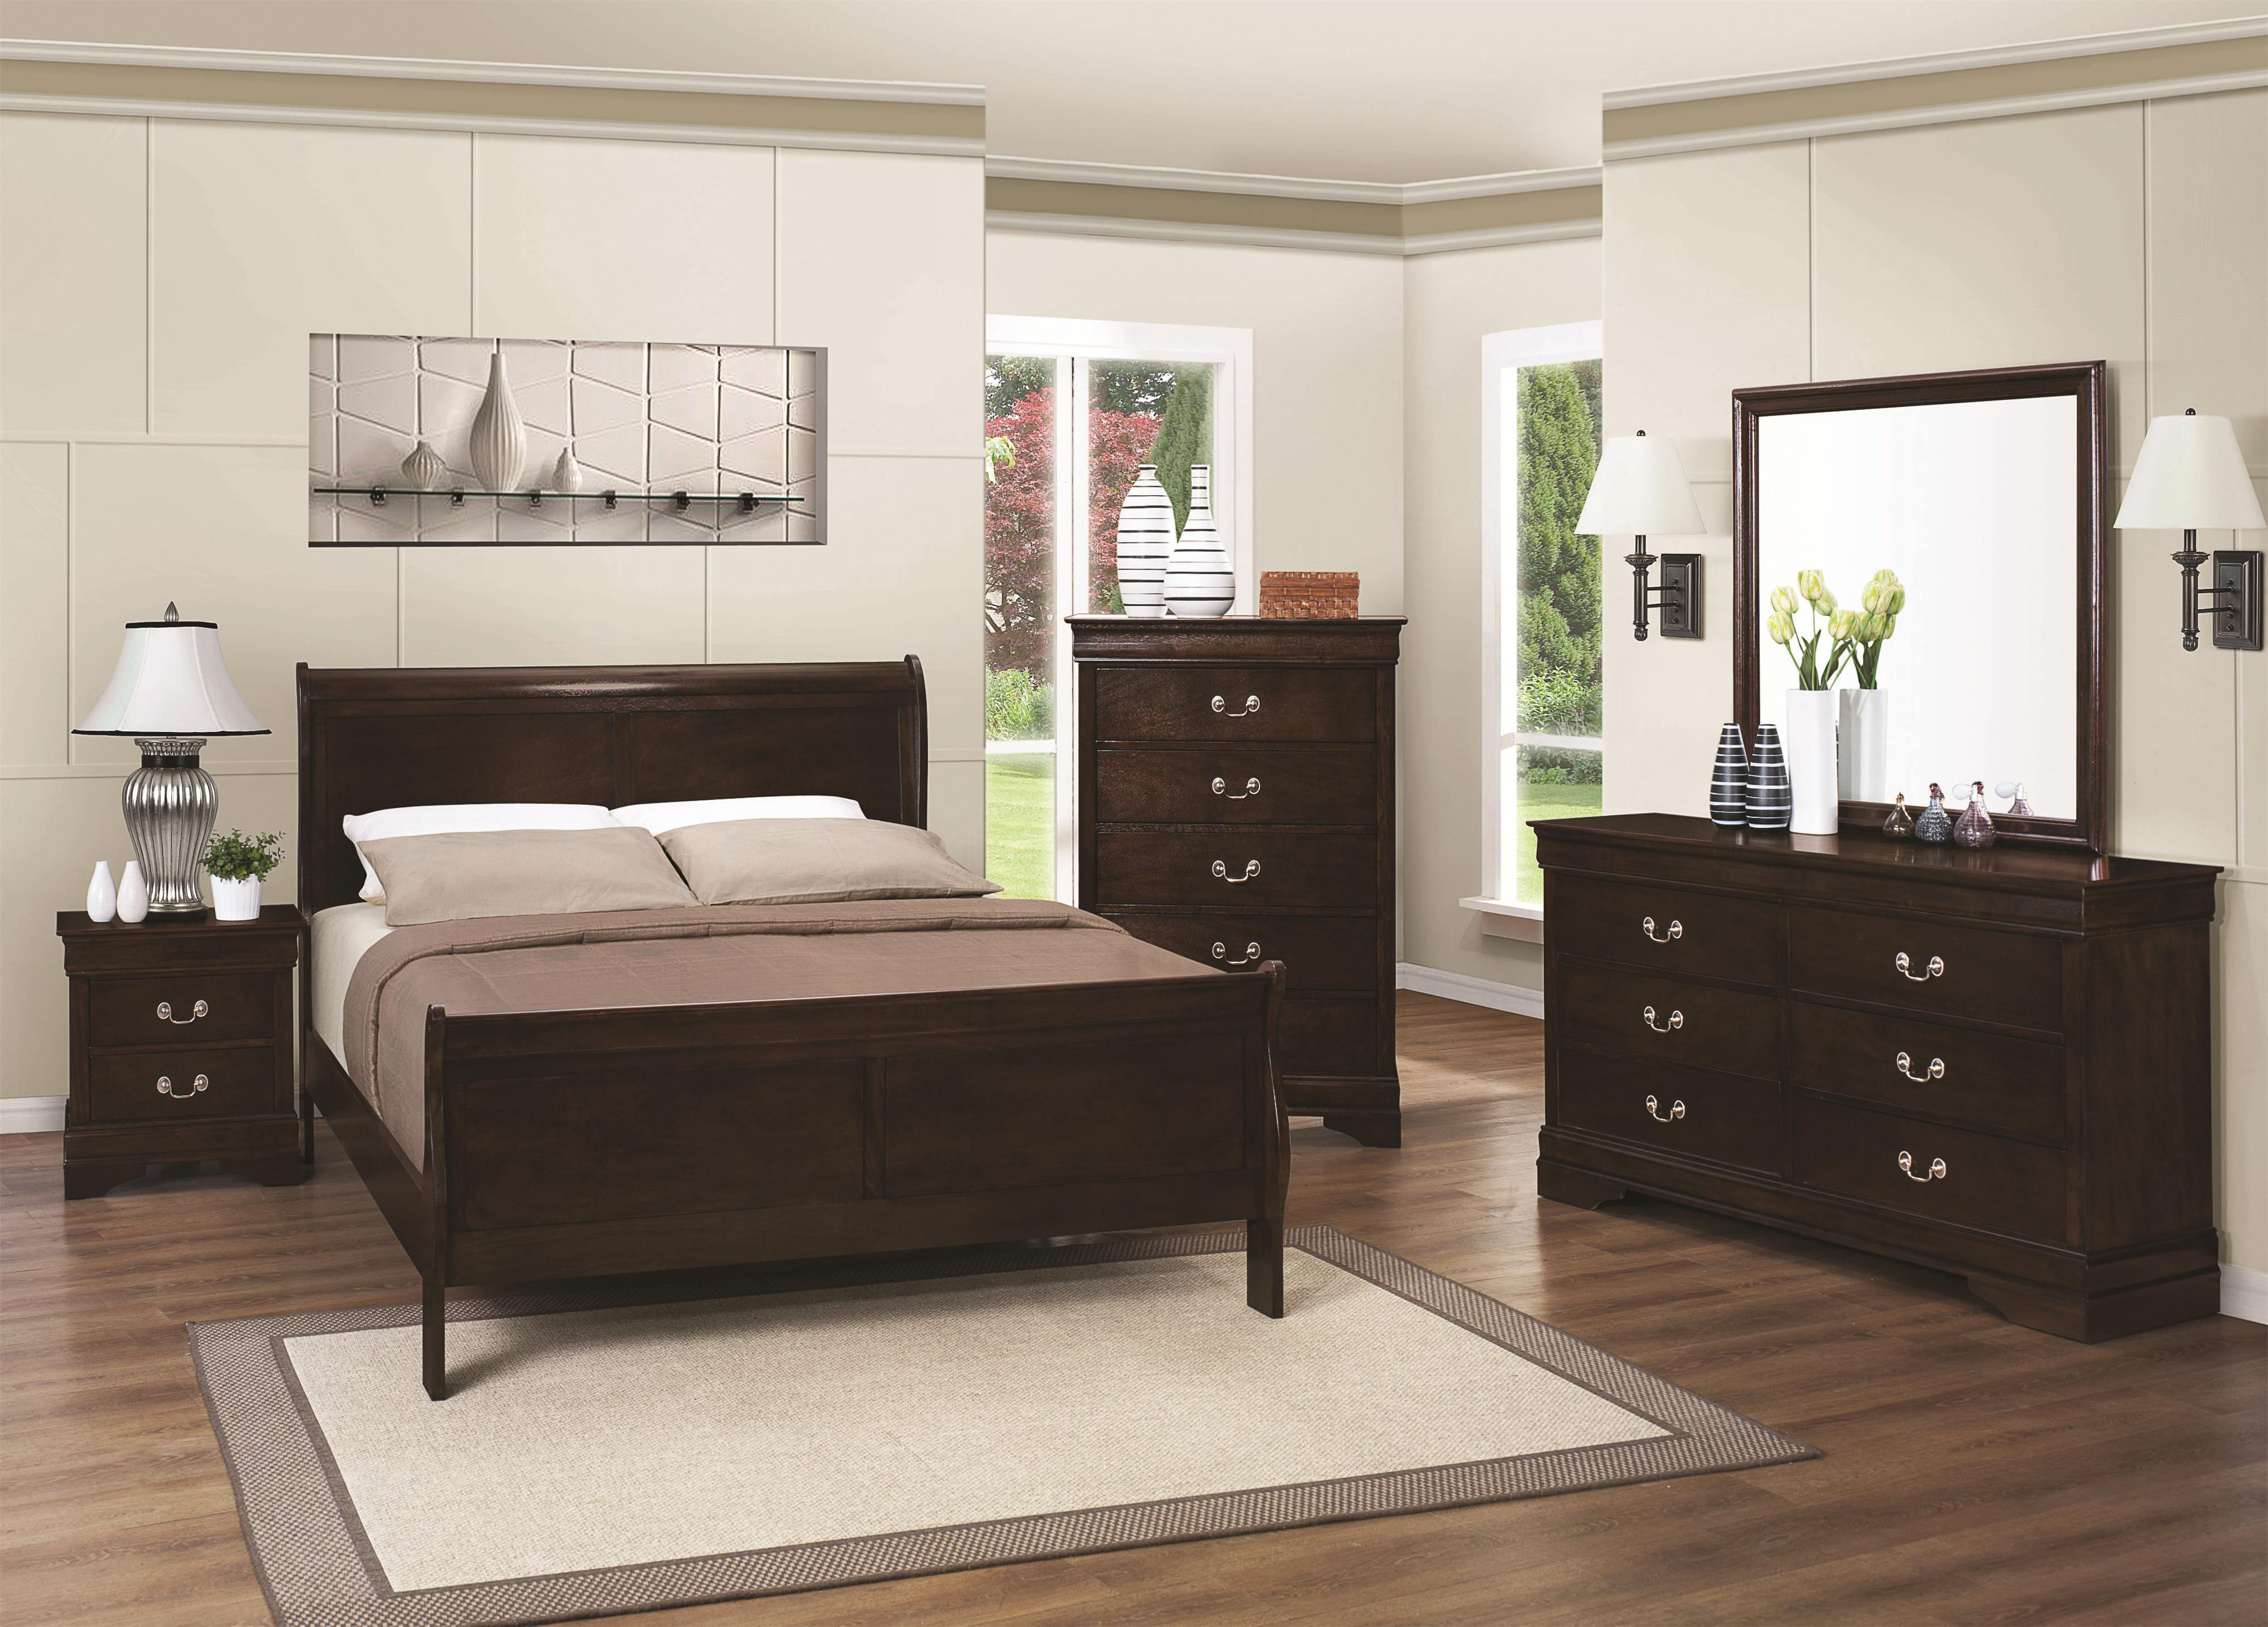 Louis Philippe 202 King Bedroom Group by Coaster at Northeast Factory Direct